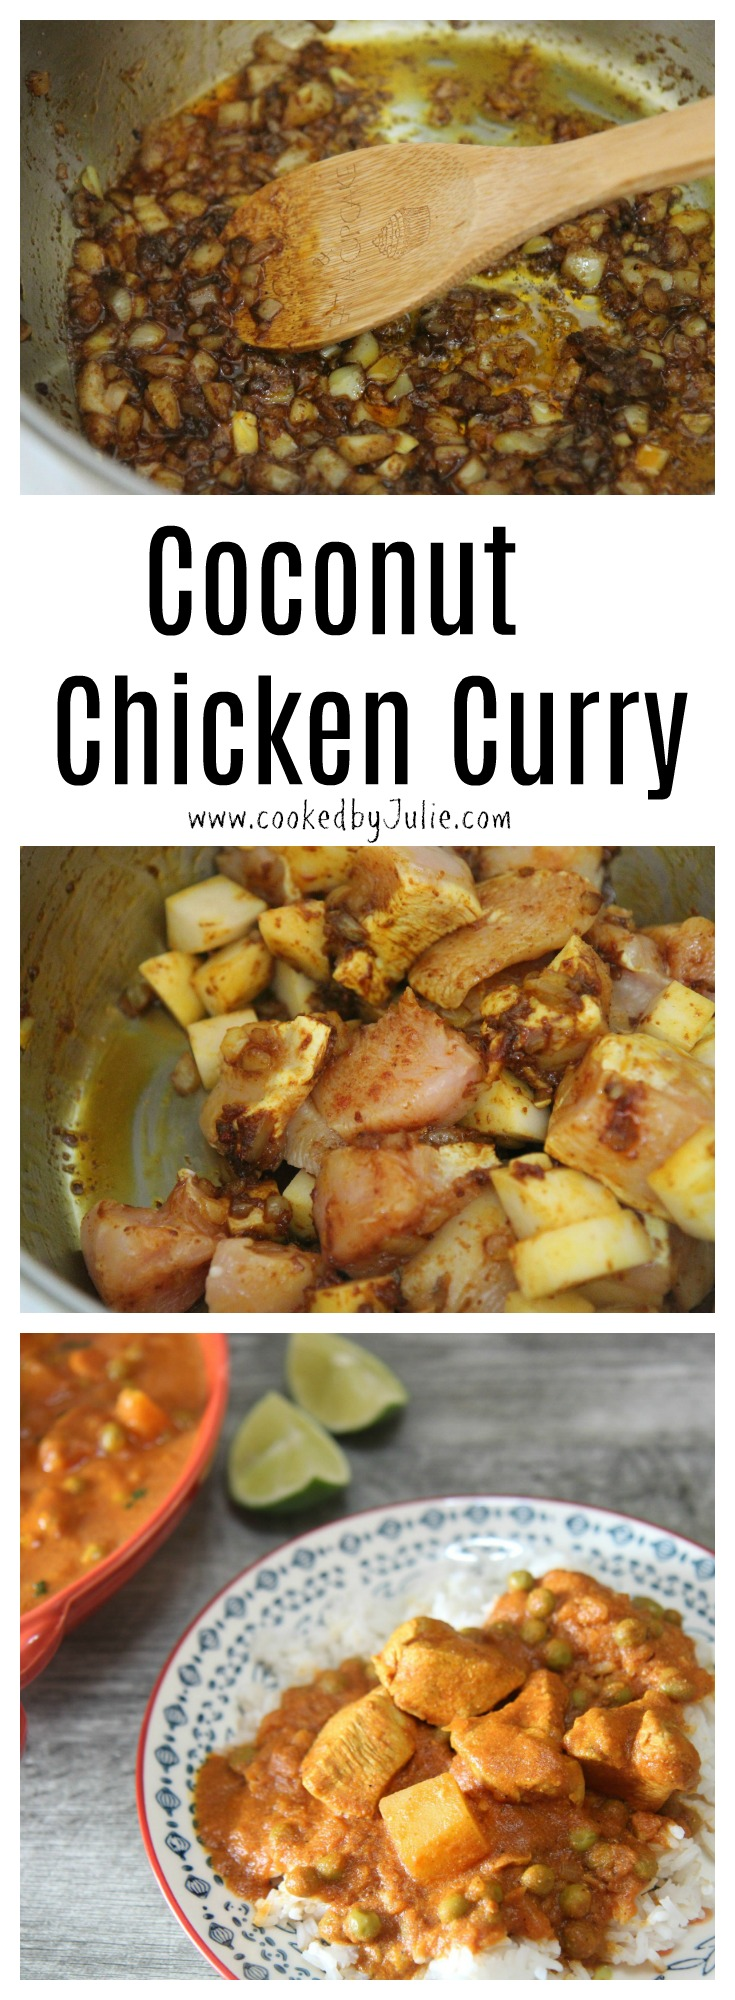 Learn how to make the best Coconut Chicken Curry from CookedByJulie.com